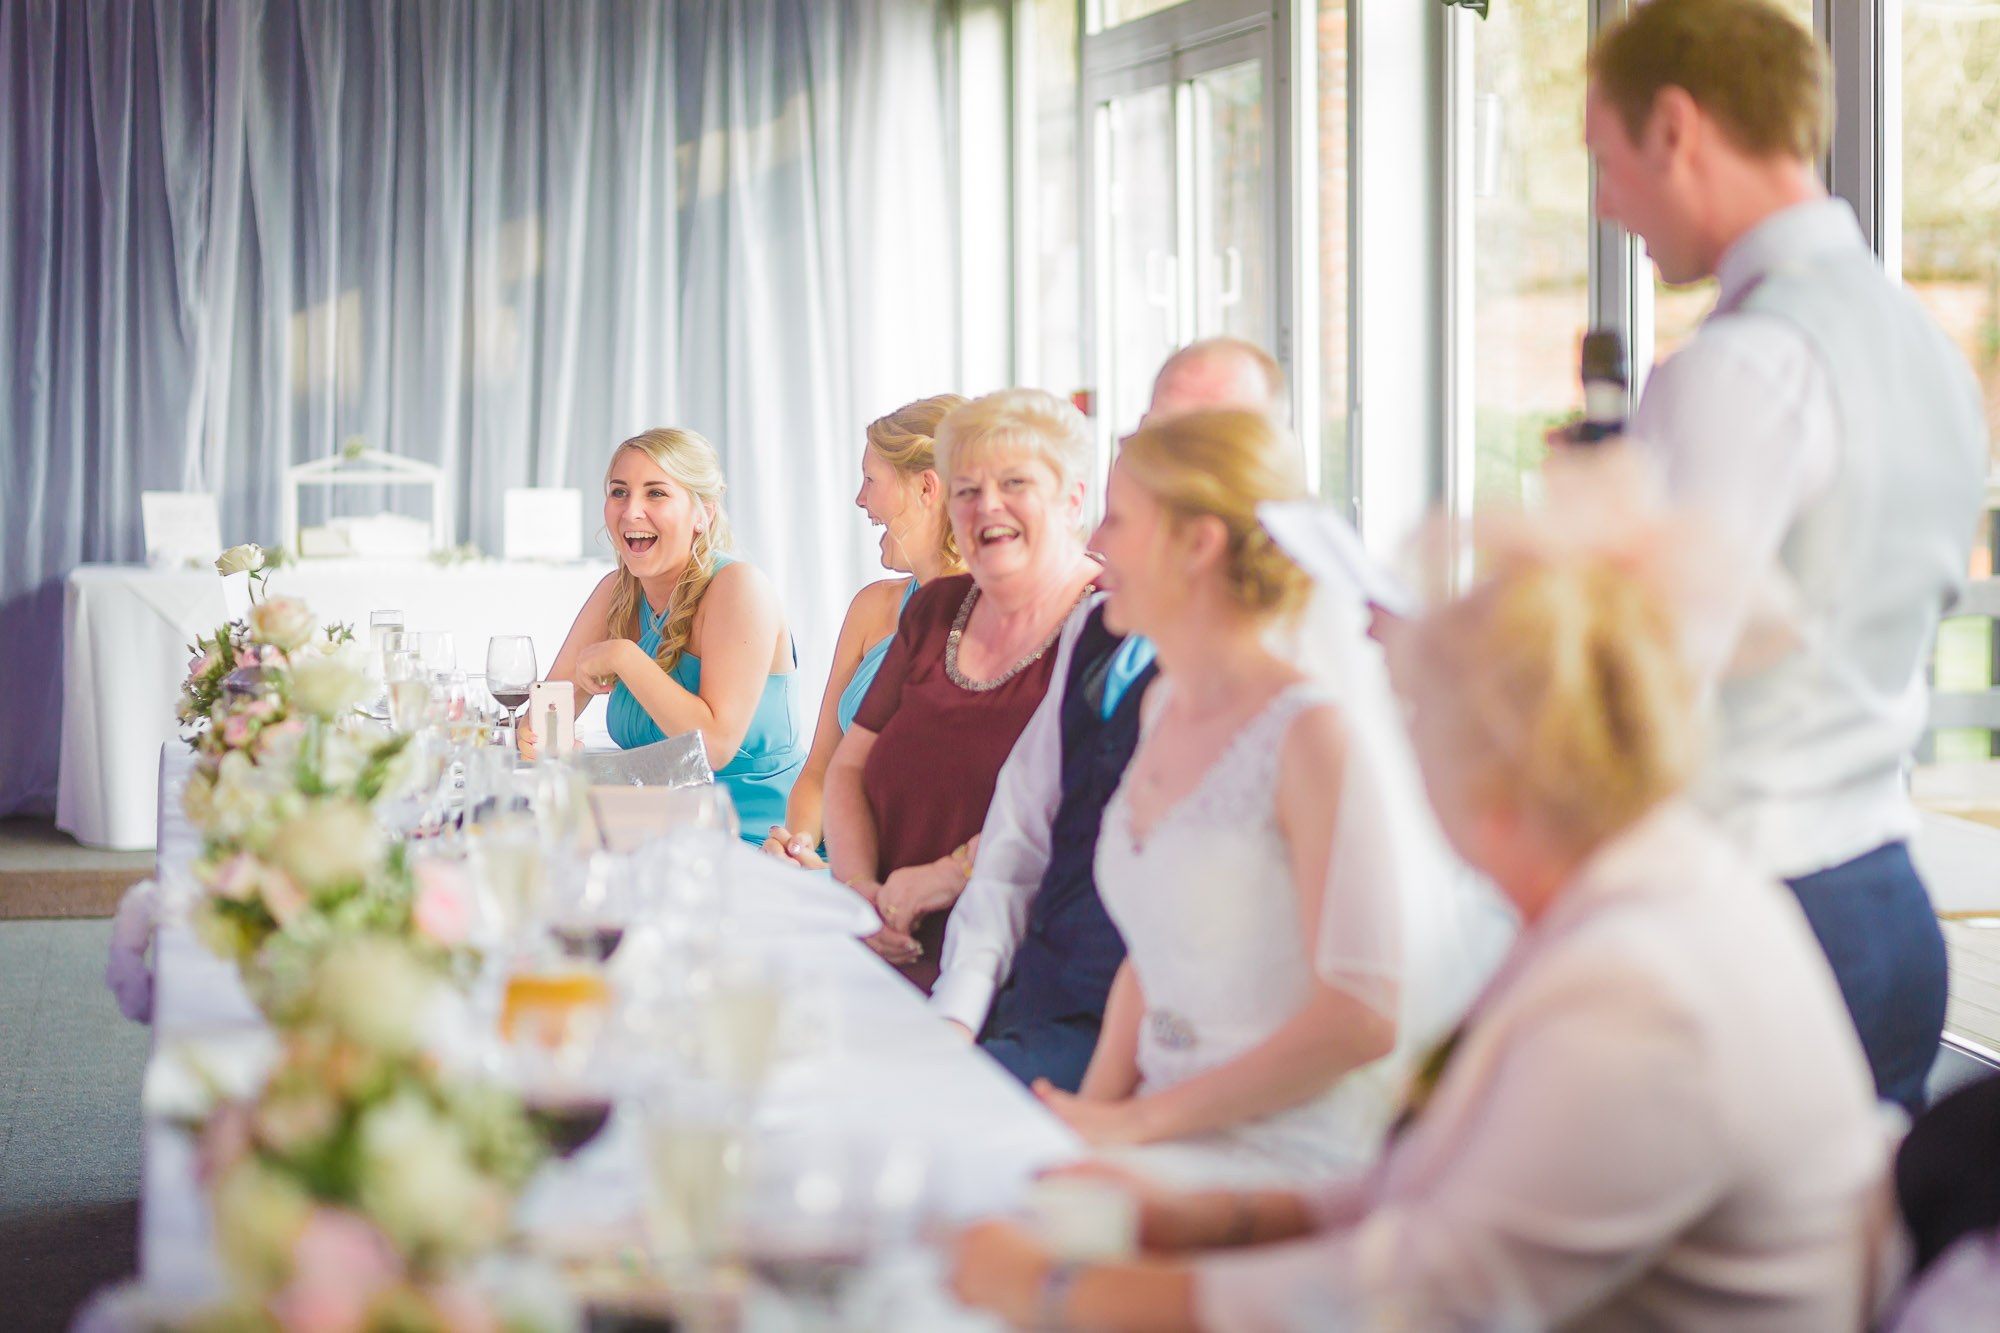 Wedding-photographs-3641